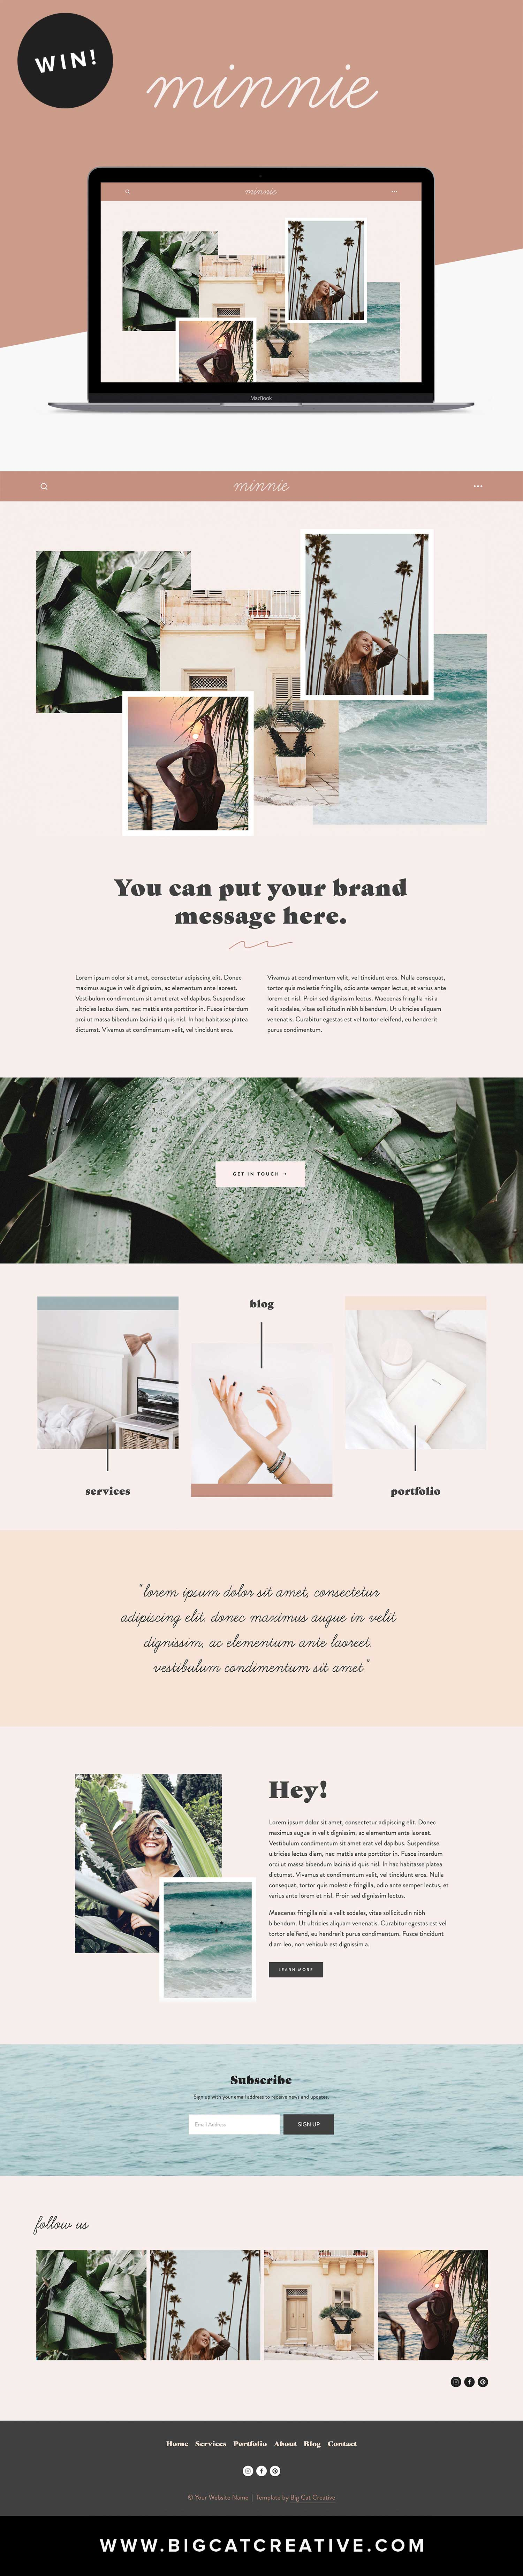 WIN THIS SQUARESPACE TEMPLATE! Minnie Squarespace Template Kit by Big Cat Creative | Squarespace | Website Template | Squarespace Template